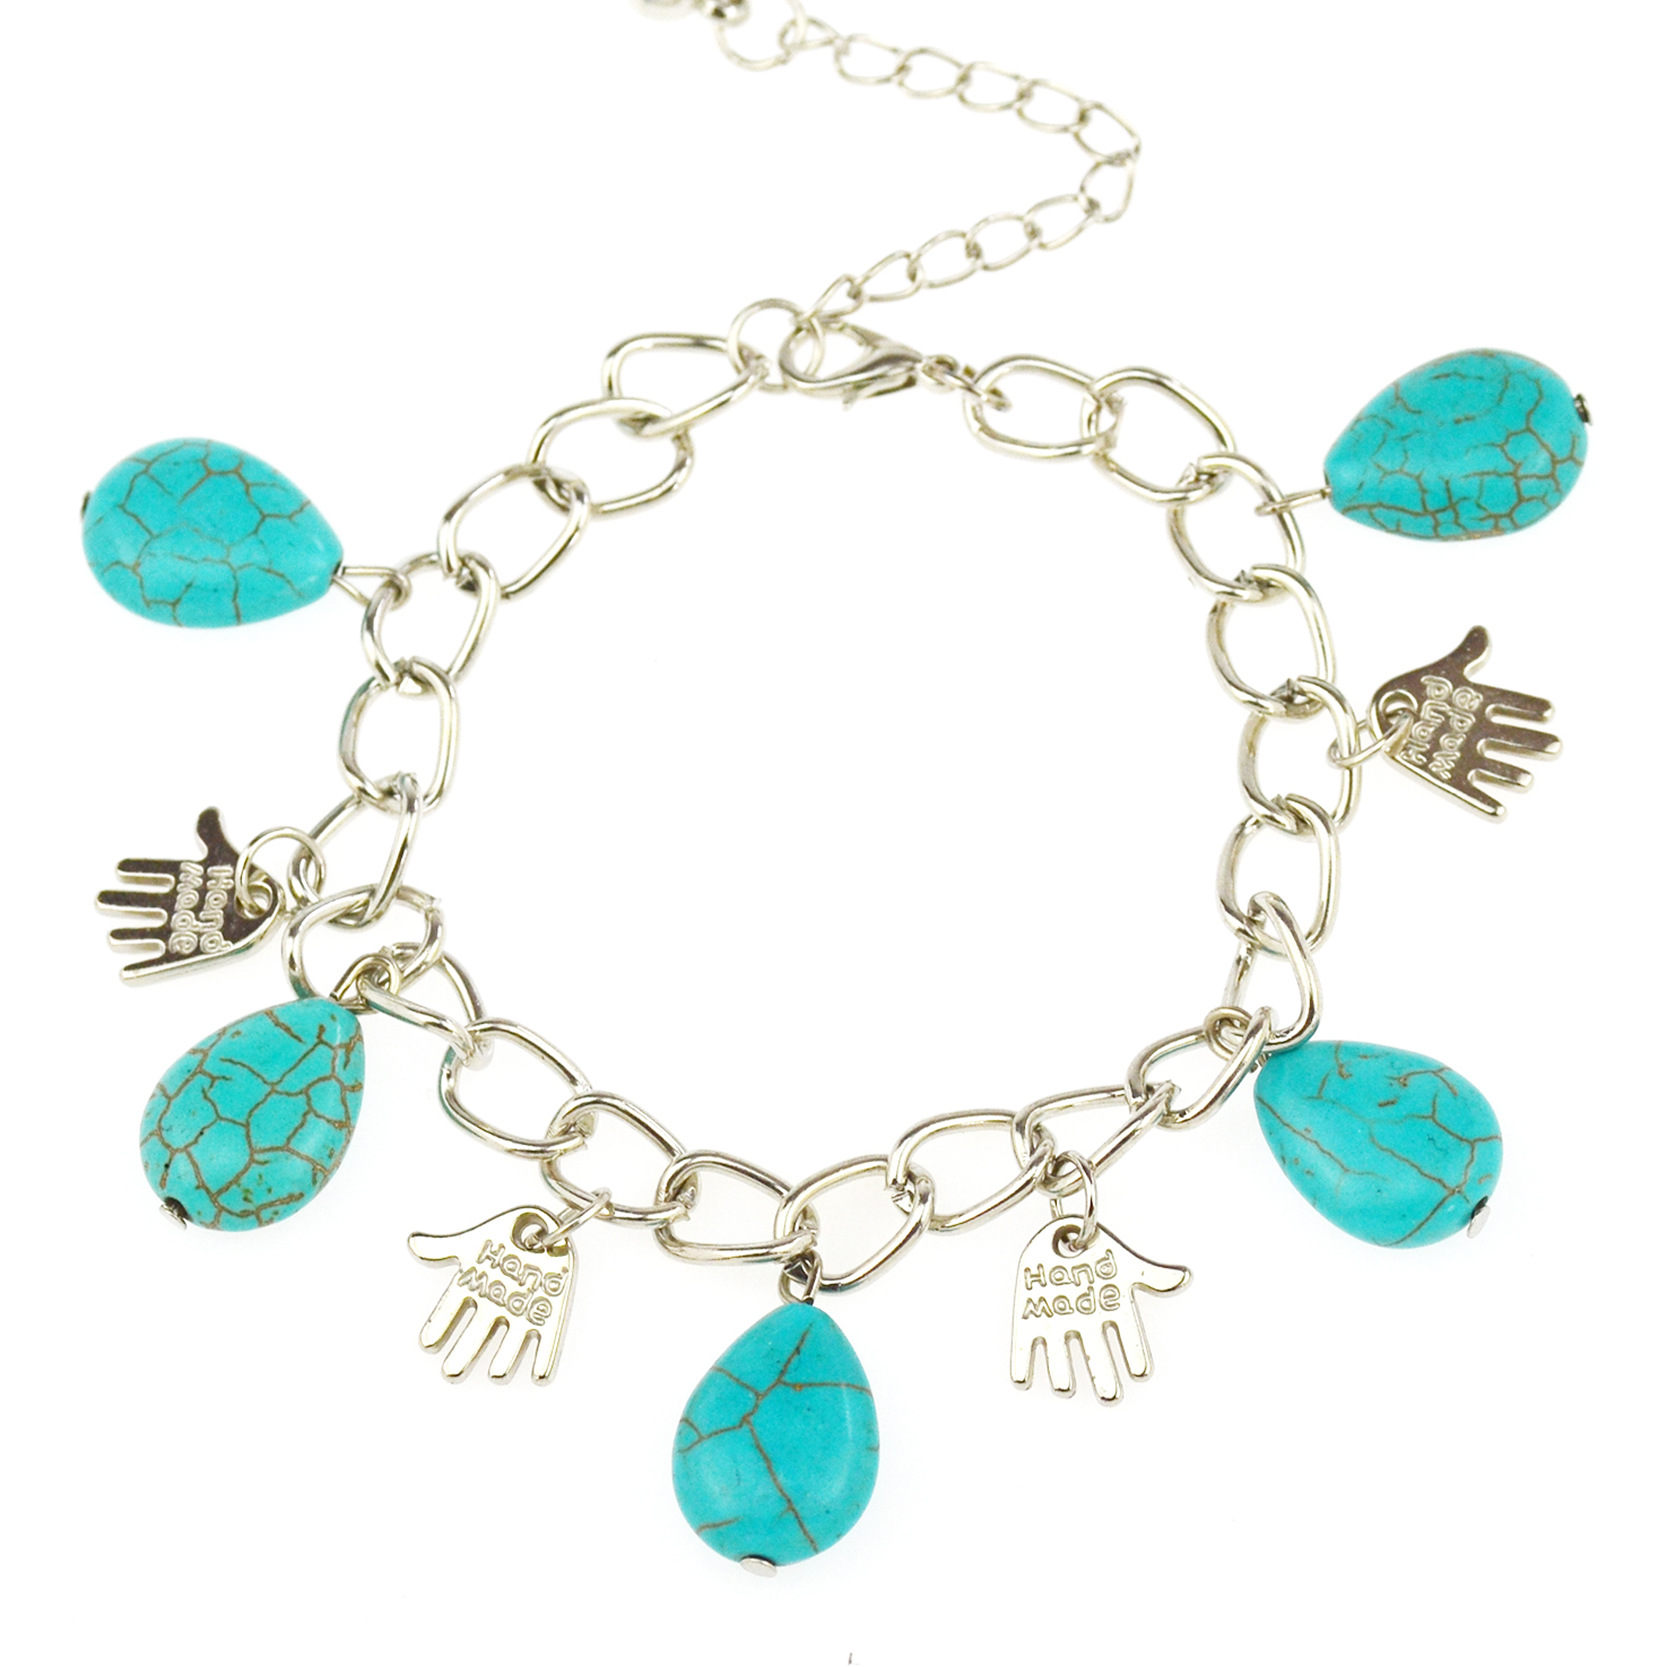 Speed sell ton source Europe and the United States jewelry wholesale Personality pendant turquoise bracelets J1499 restorin anc(China (Mainland))